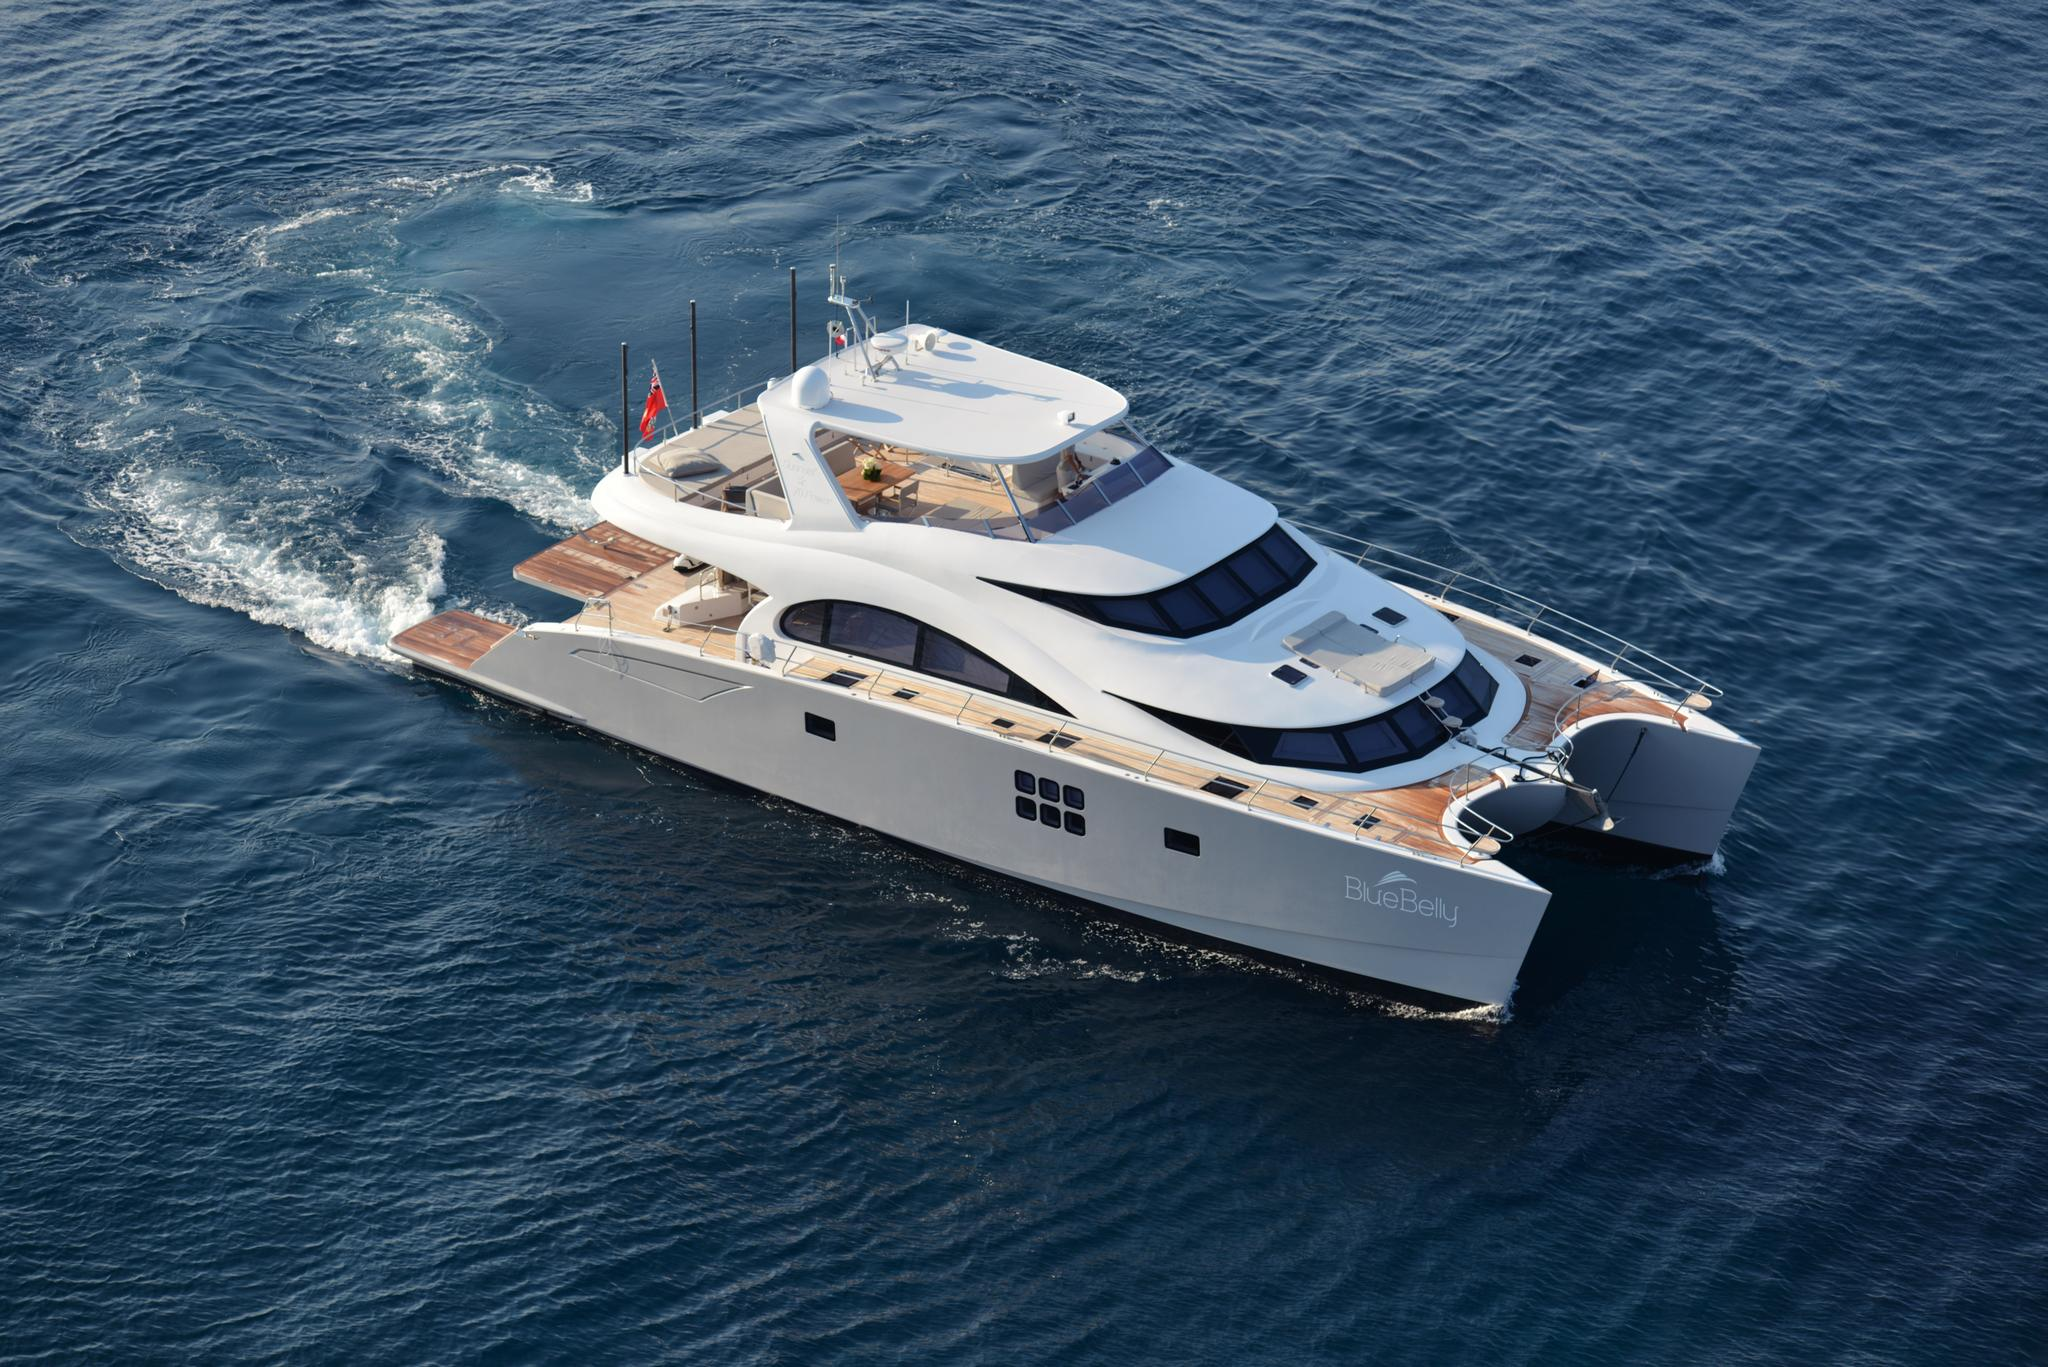 Sunreef Power 70 Catamaran